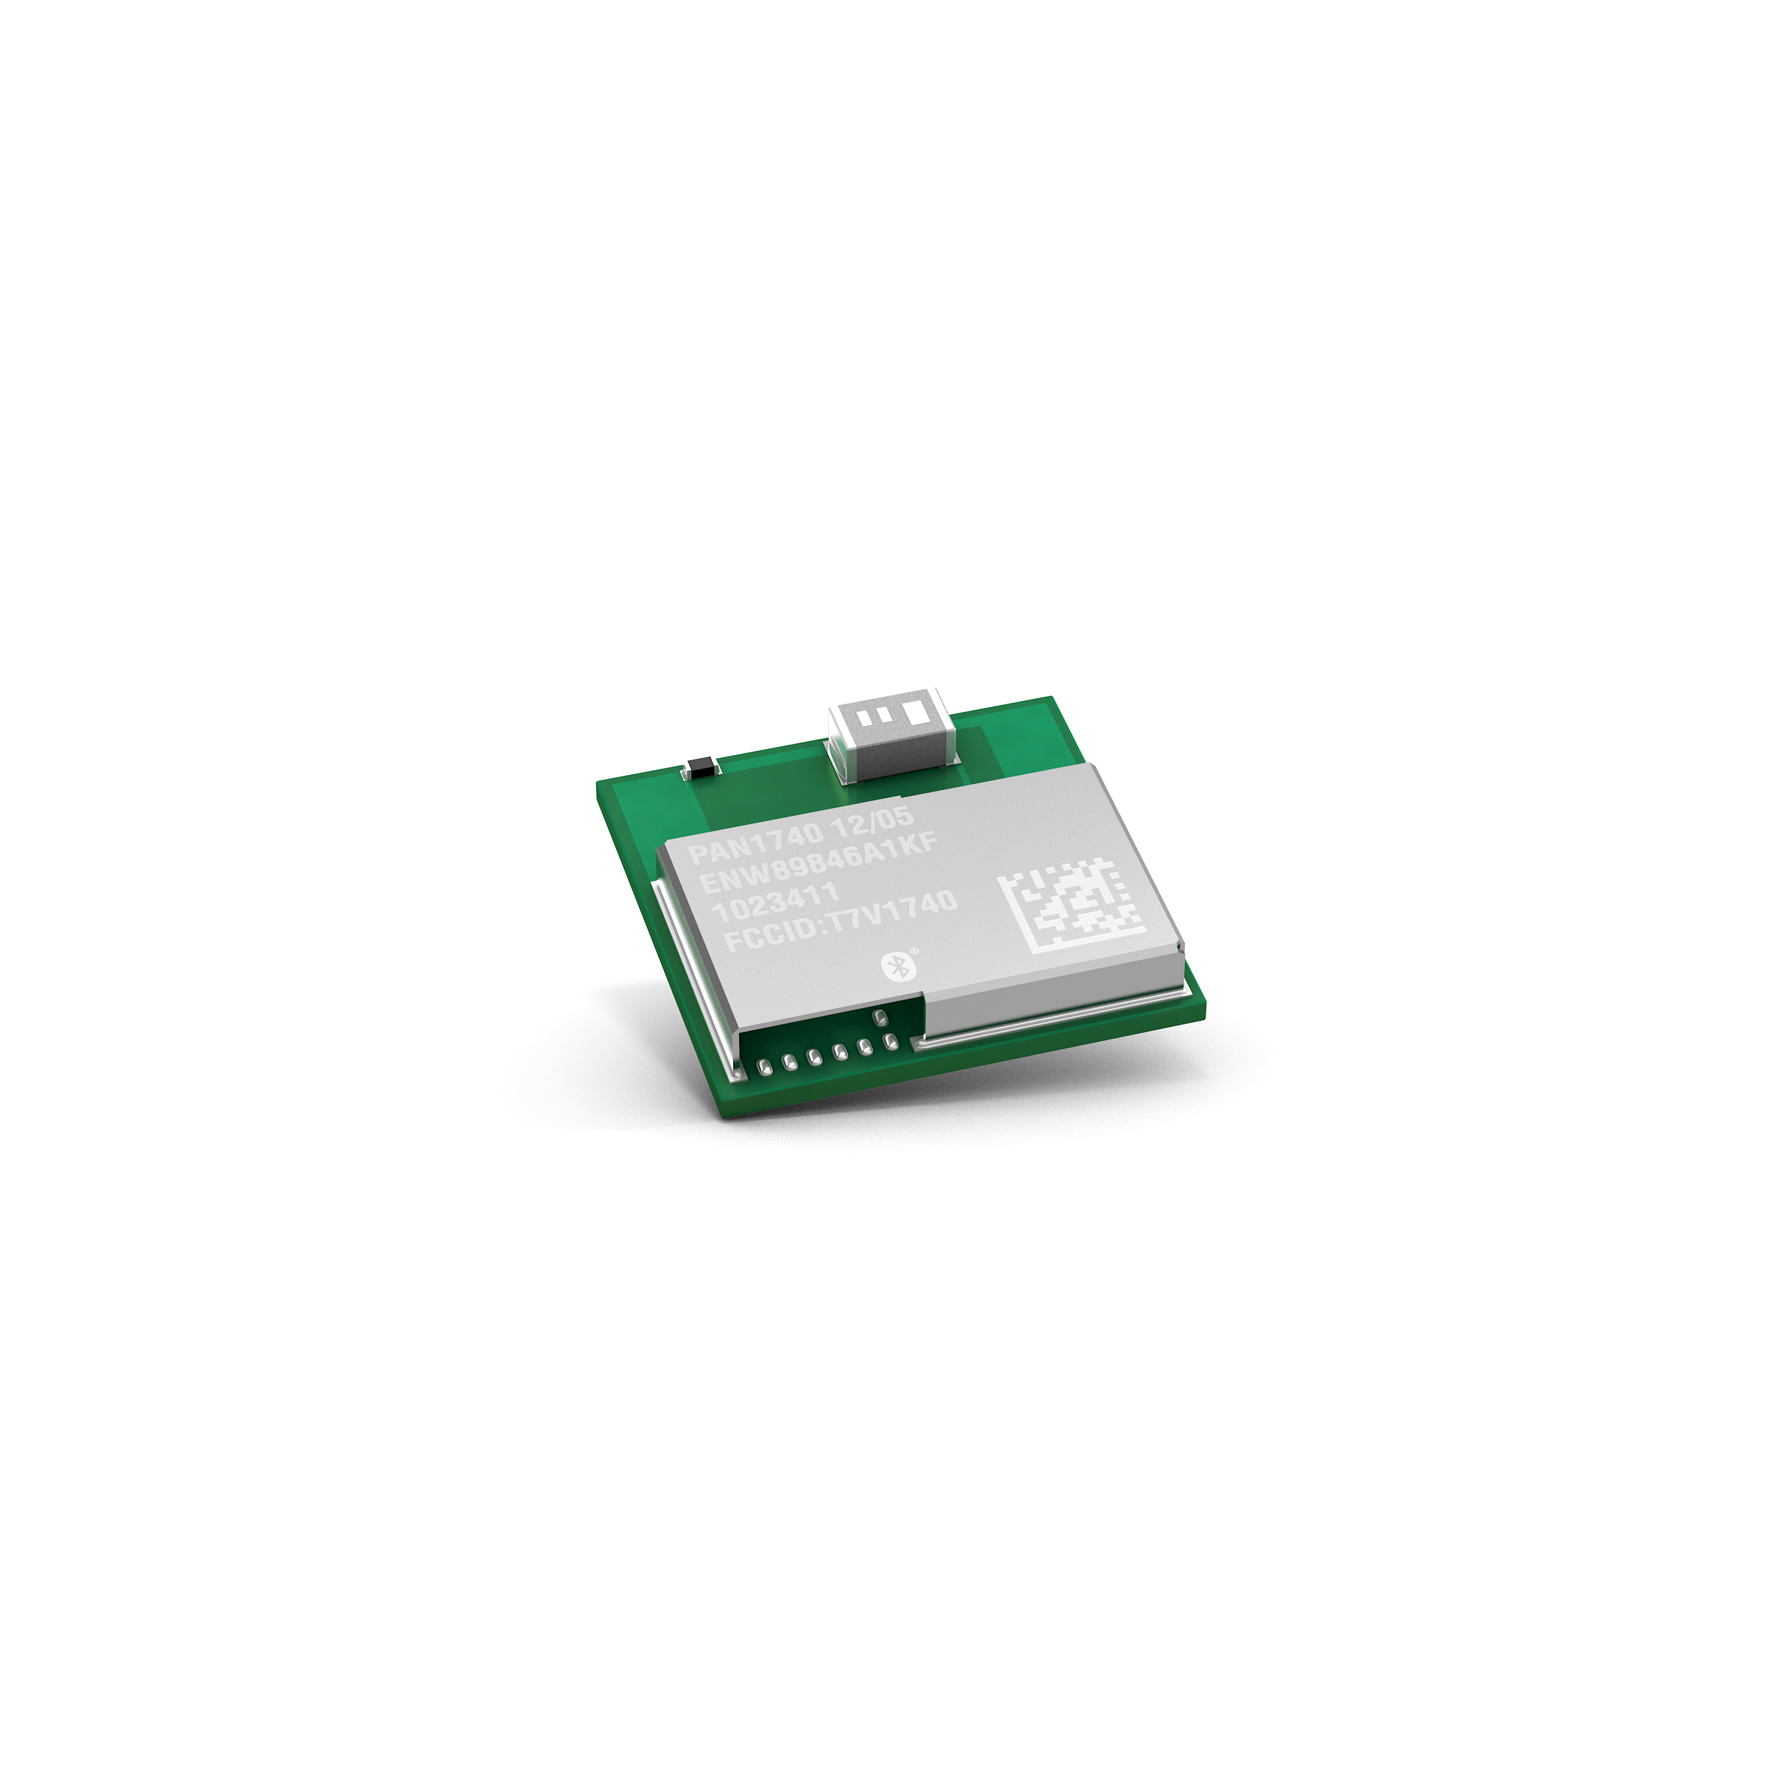 PAN1740 Bluetooth module